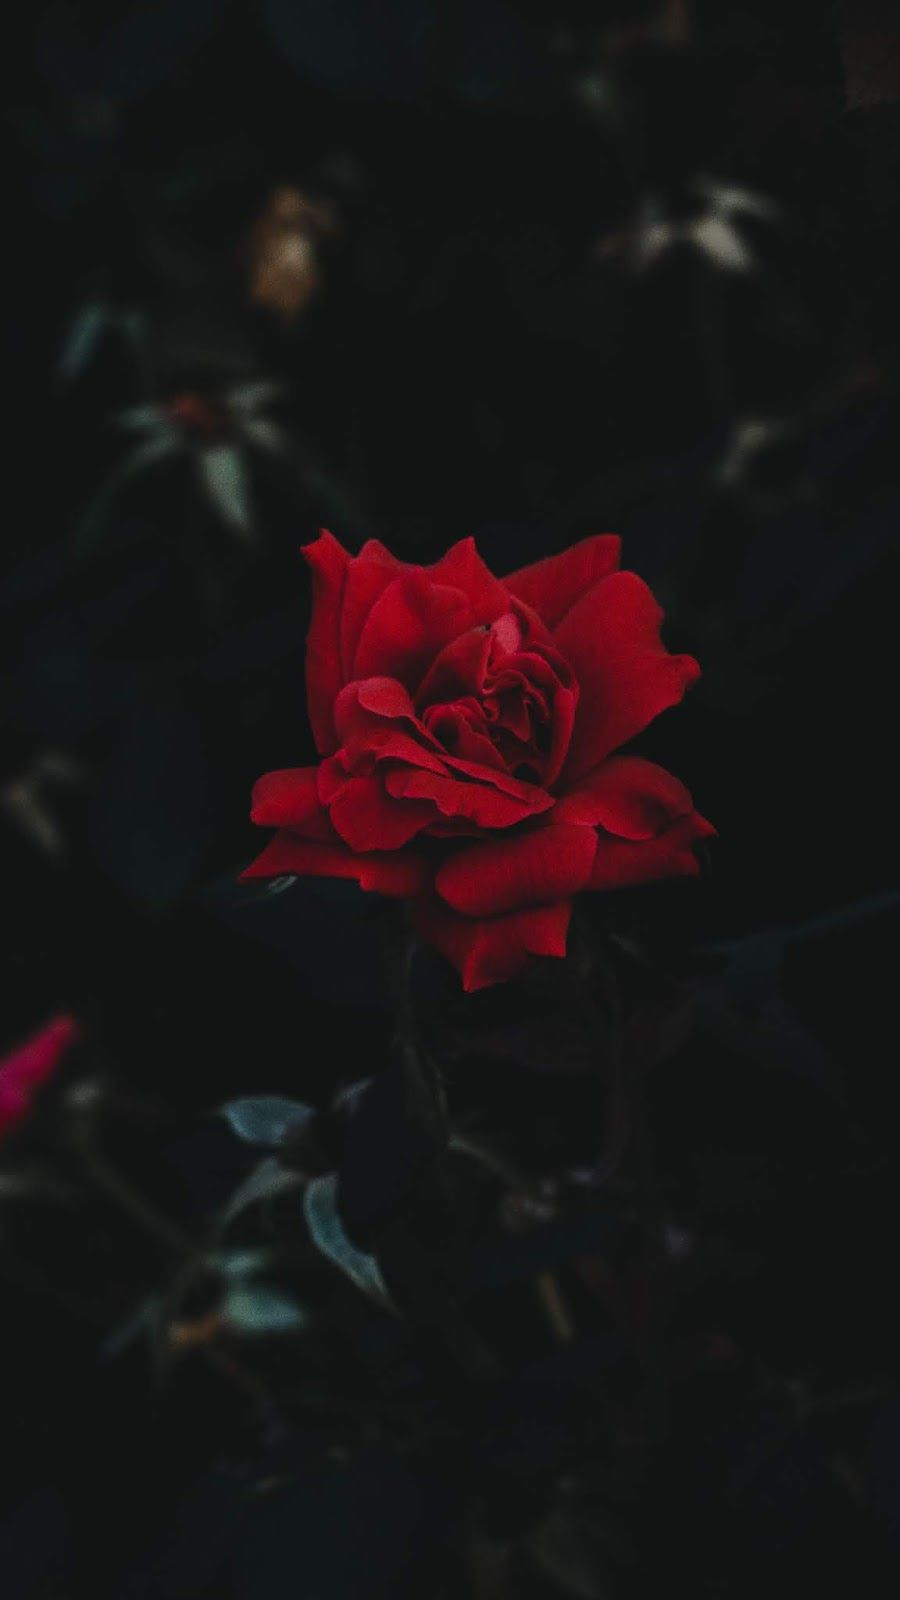 Red Rose Wallpaper Iphone Android Background Followme Red Roses Wallpaper Dark Background Wallpaper Rose Wallpaper